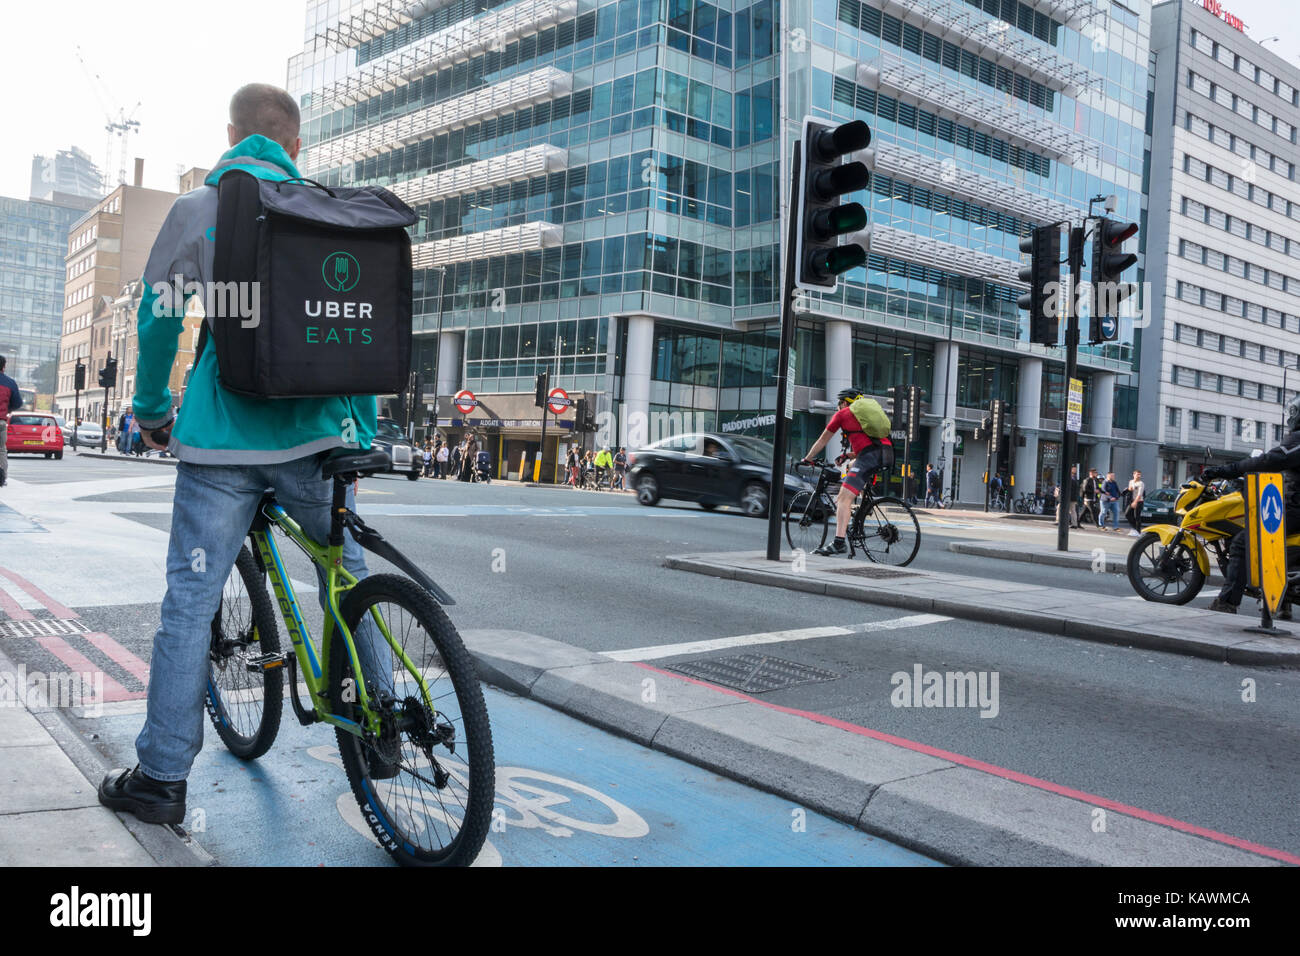 An Uber Eats delivery cyclist outside Uber Headquarters in Aldgate Tower, Whitechapel, London, UK Stock Photo